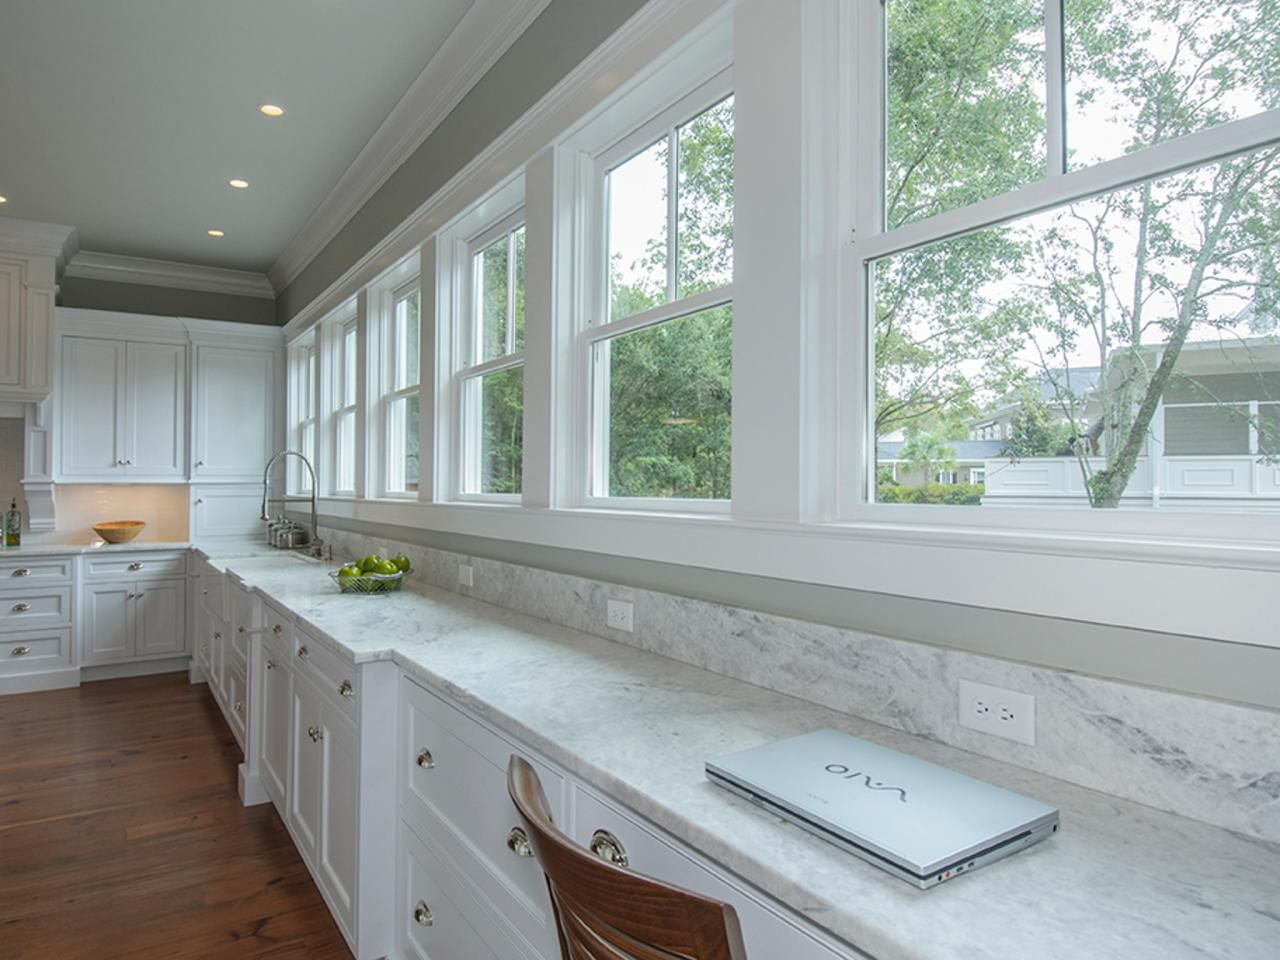 79 Beautiful Kitchen Window Options and Ideas #traditionalkitchen